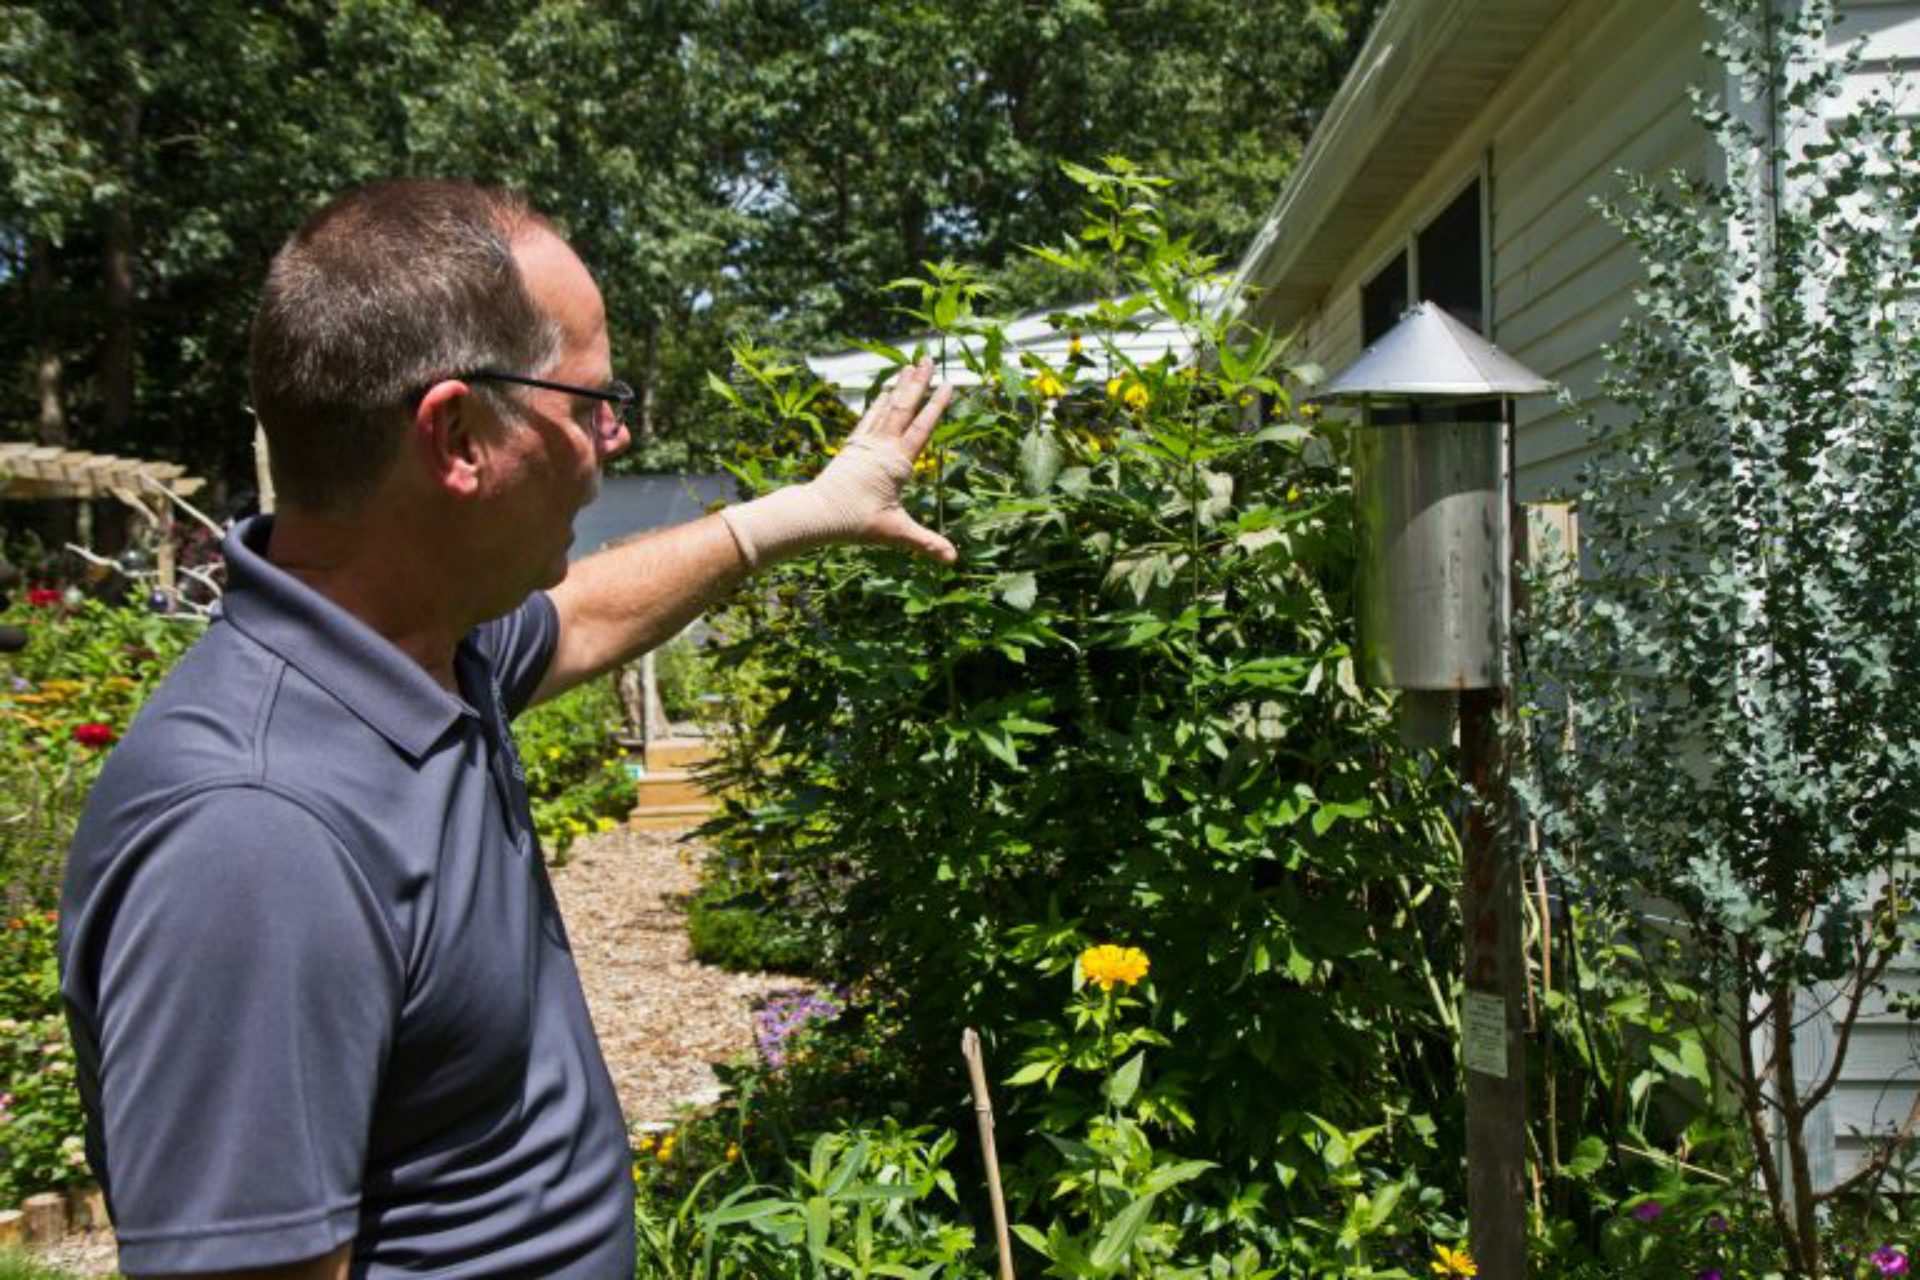 Peter Bosak, superintendent of the Cape May County Department of Mosquito Control, explains how mosquitos are trapped.